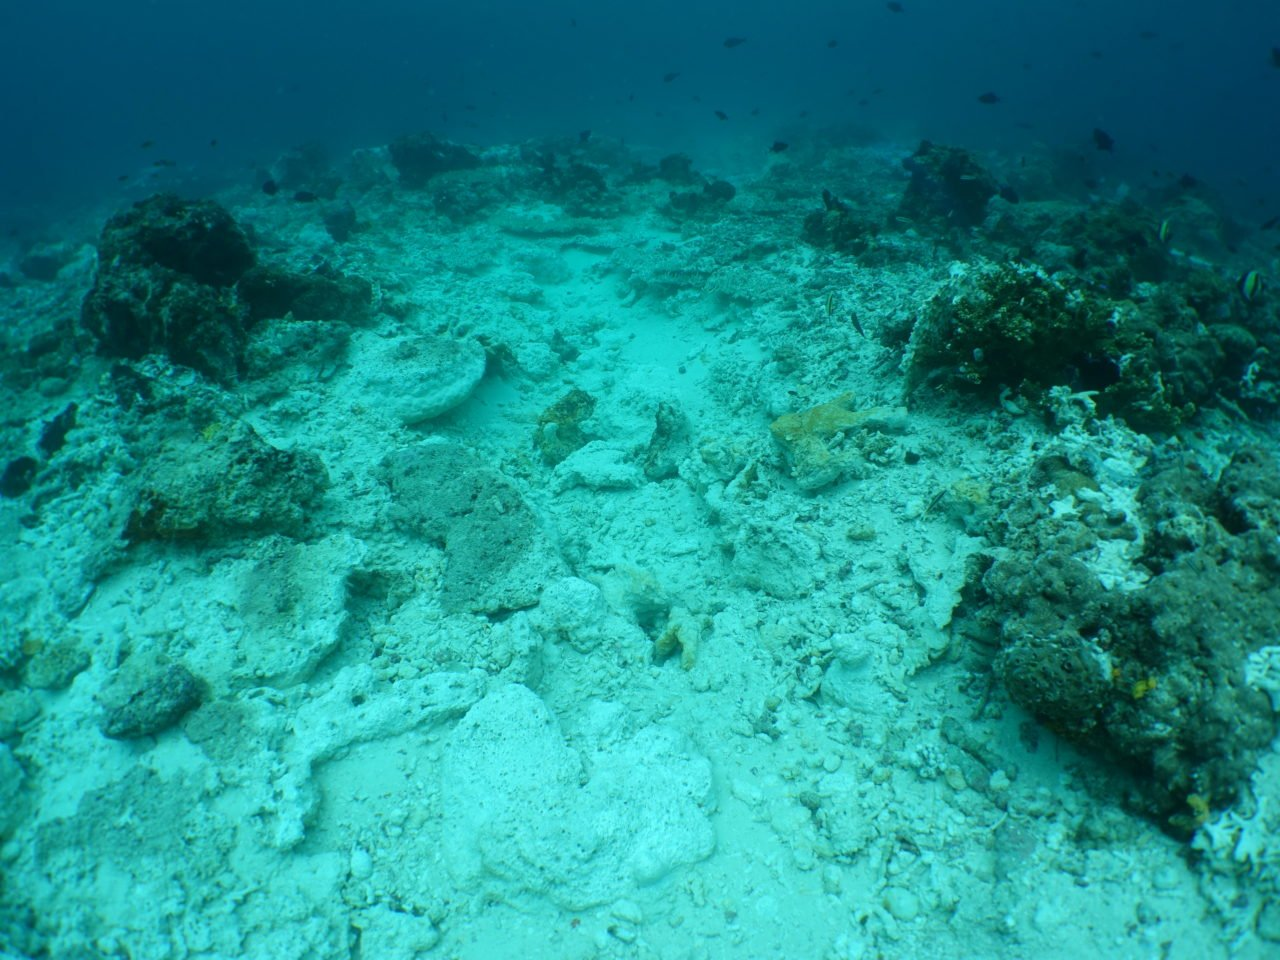 Image of Reef Damage at Raja Ampat Crossover Reef